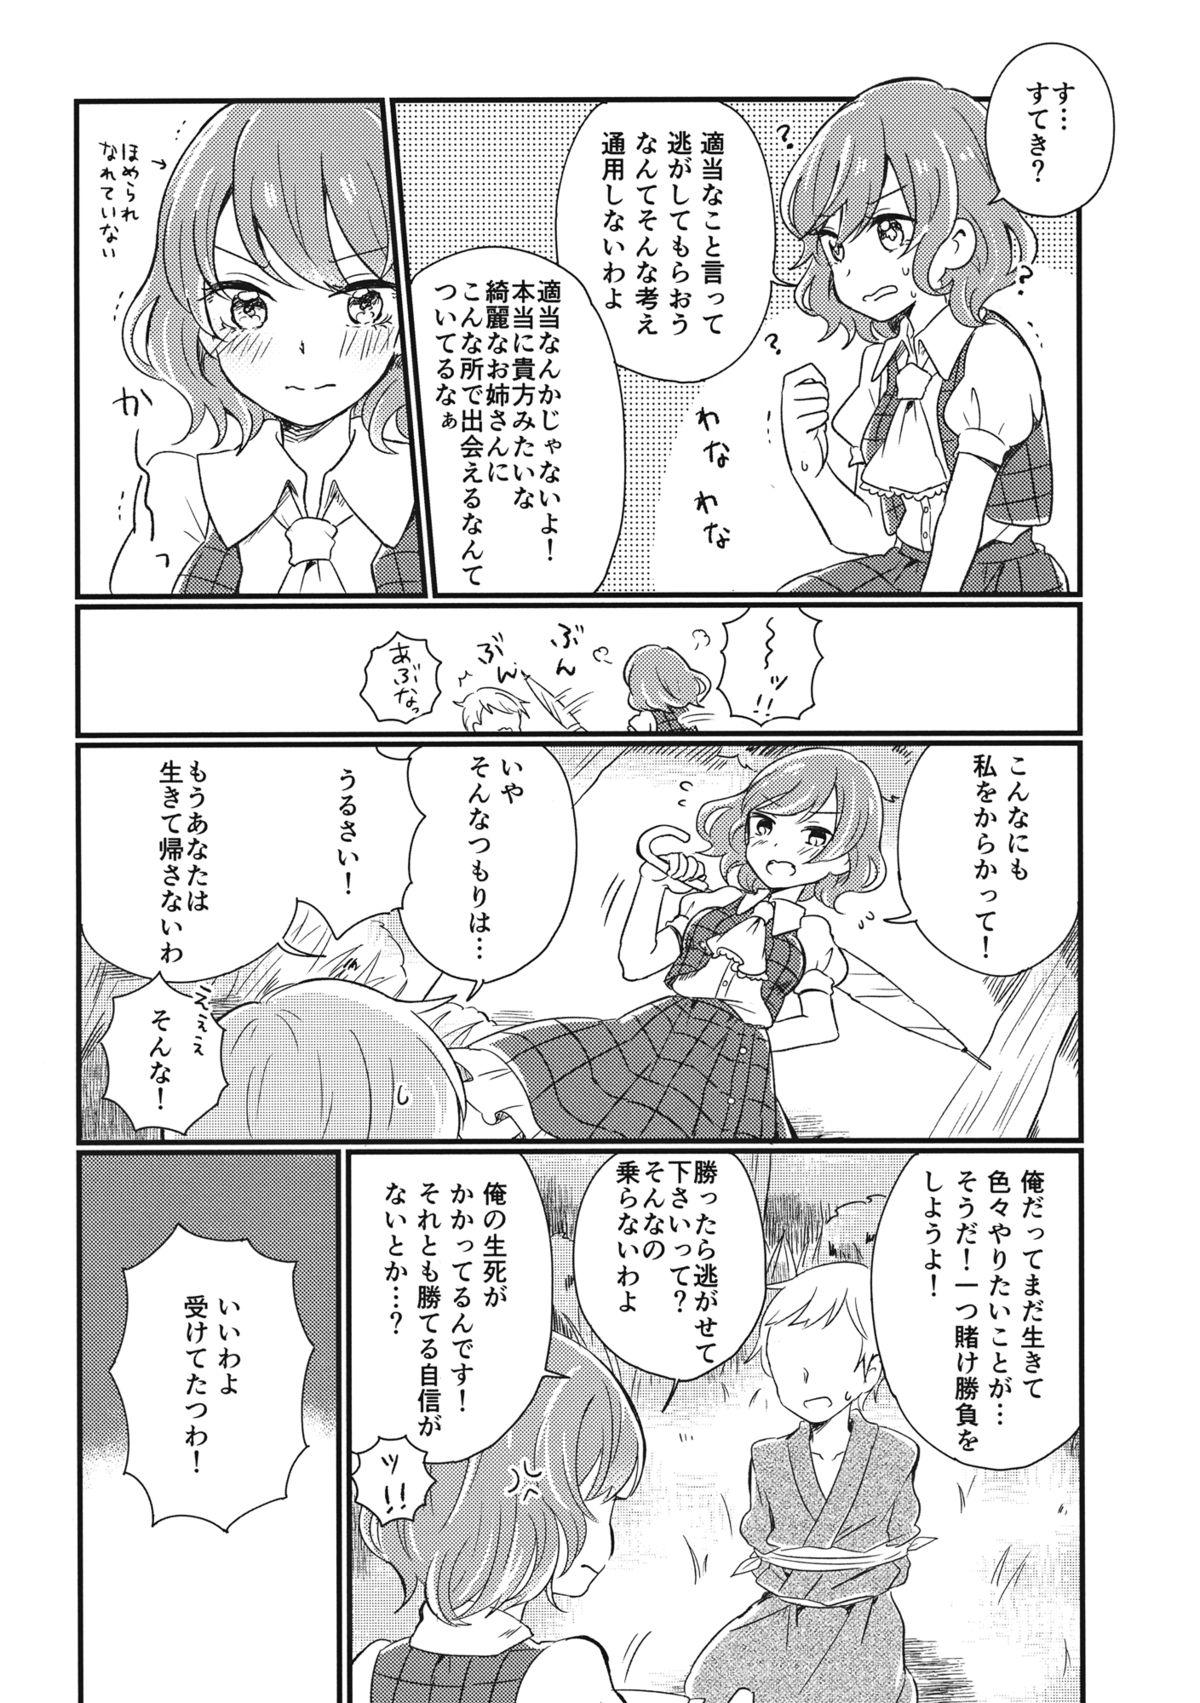 Touhou Muchi Shichu Goudou - Toho joint magazine sex in the ignorant situations 40